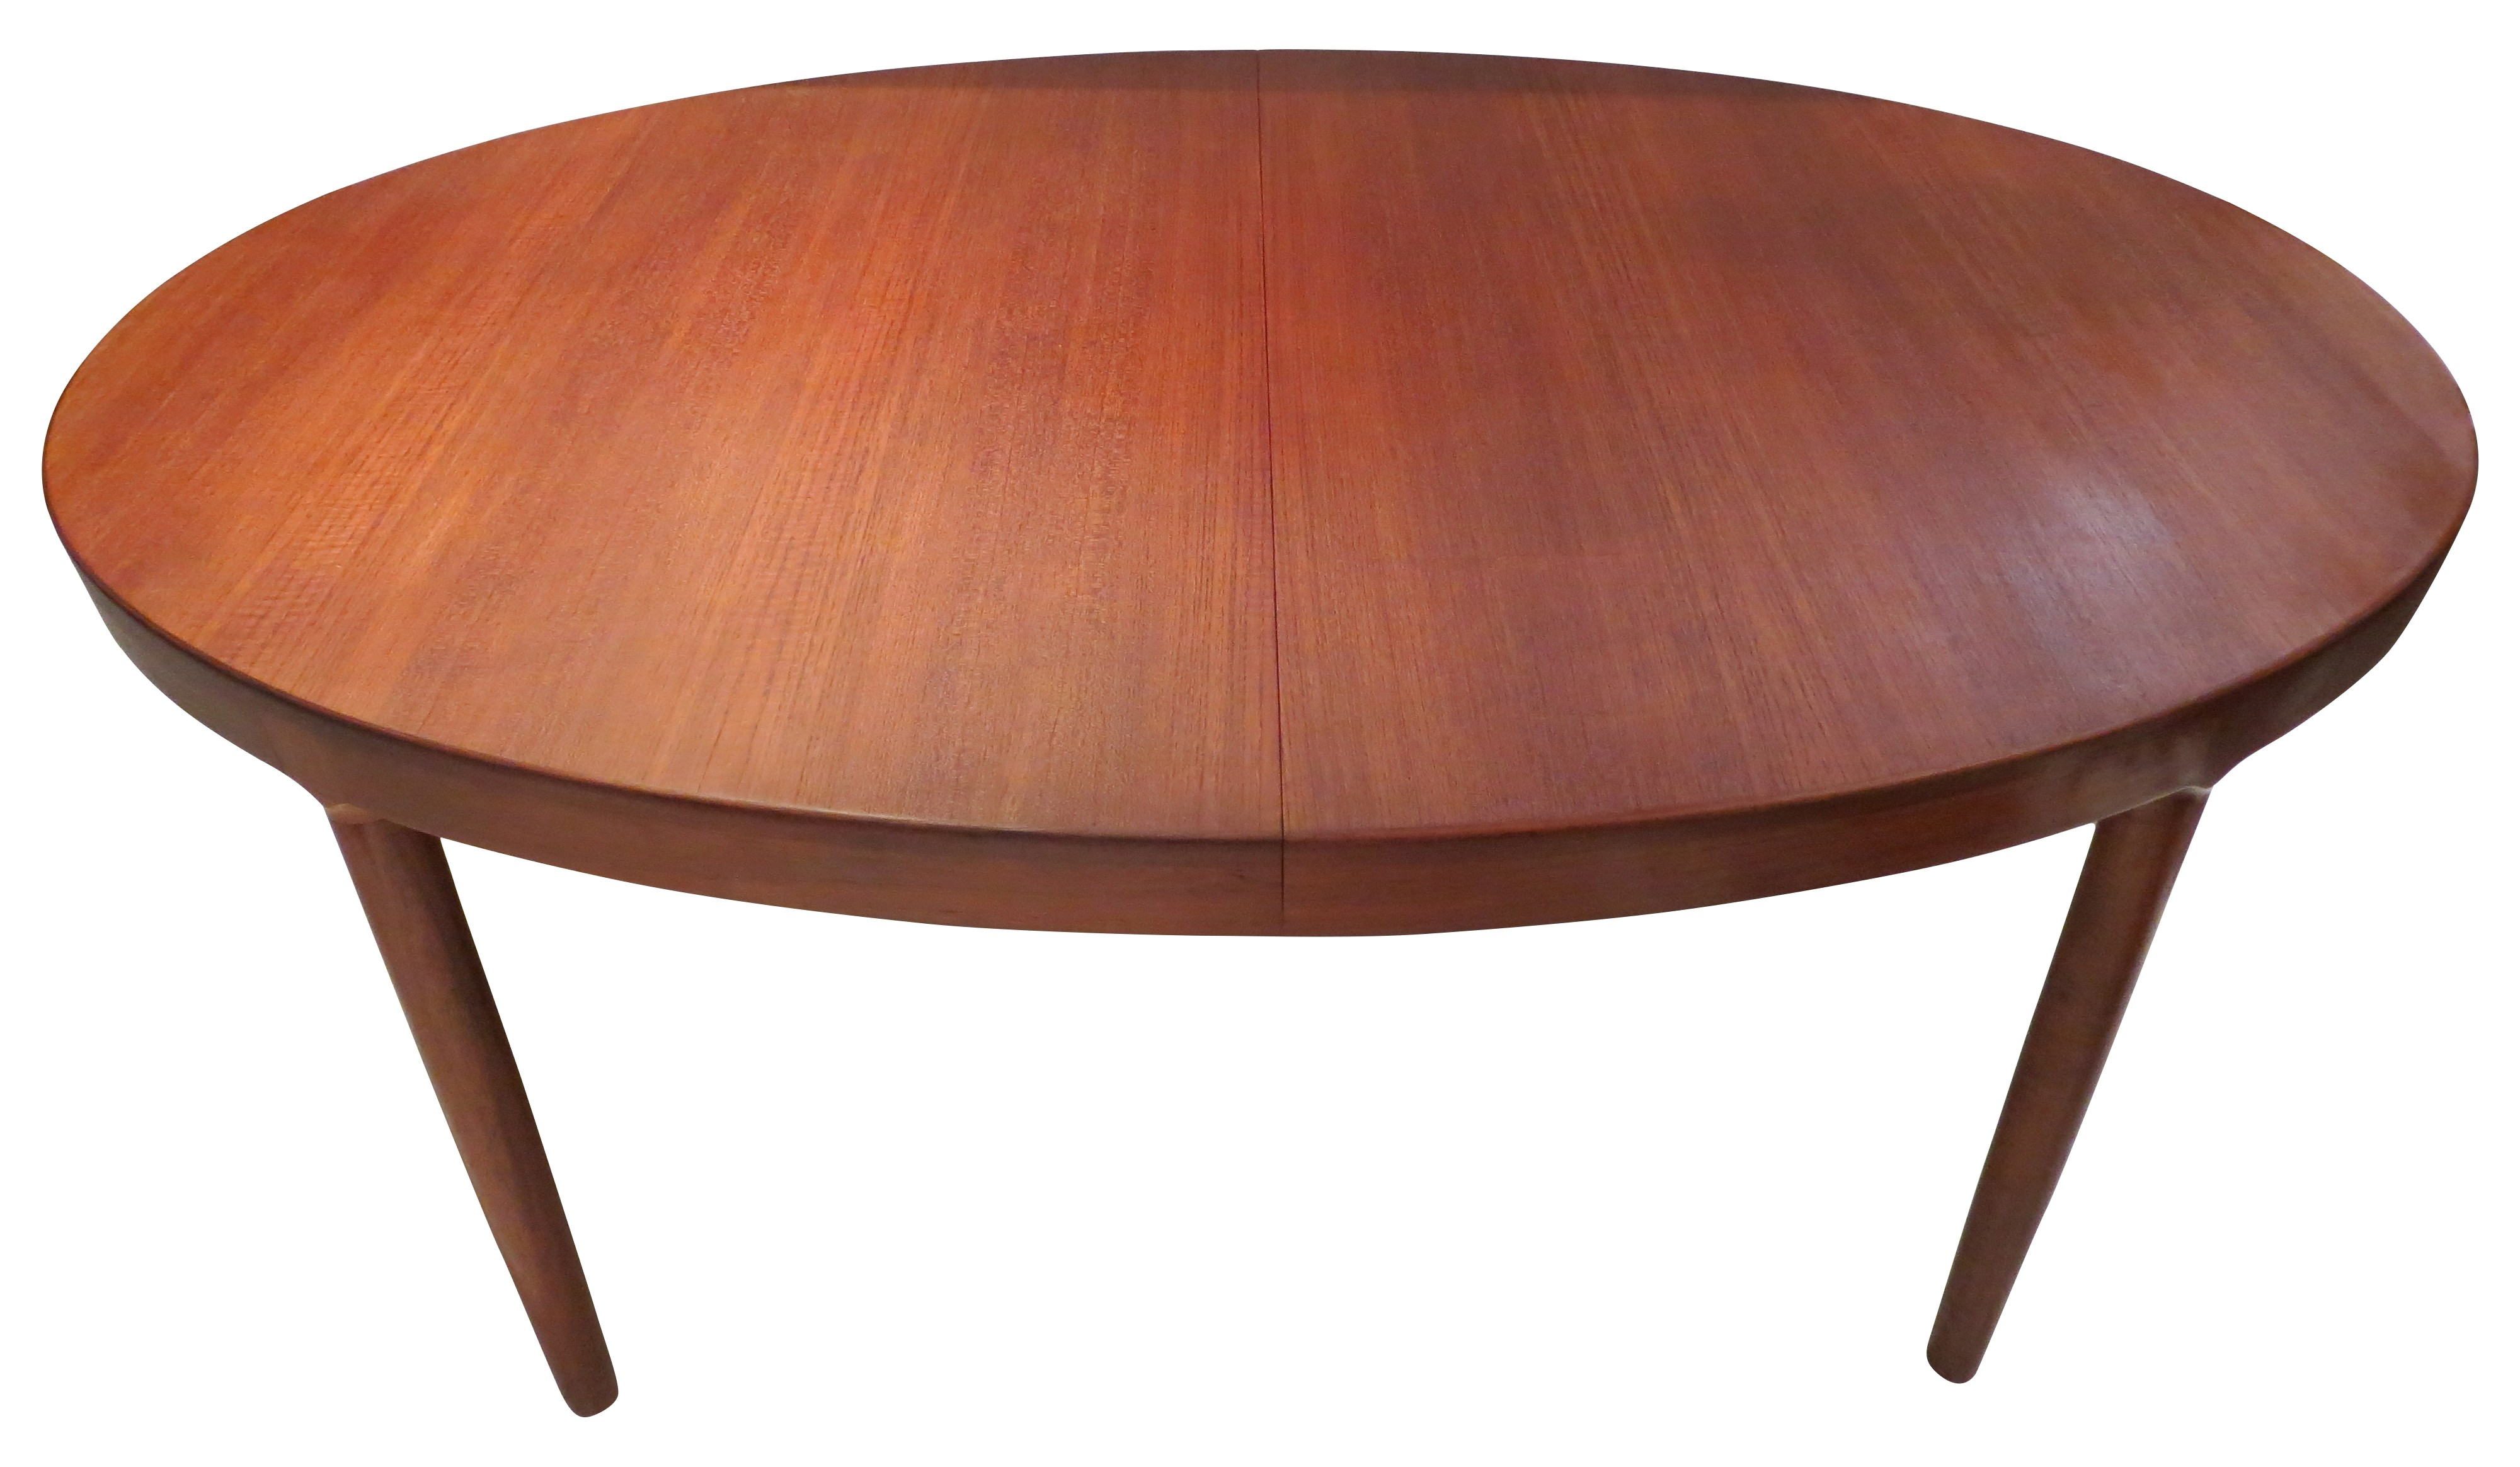 Teak Oval Dining Table Image collections Dining Table Ideas : oval dining table in teak harry ostergaard 1960s from sorahana.info size 4000 x 2328 jpeg 882kB